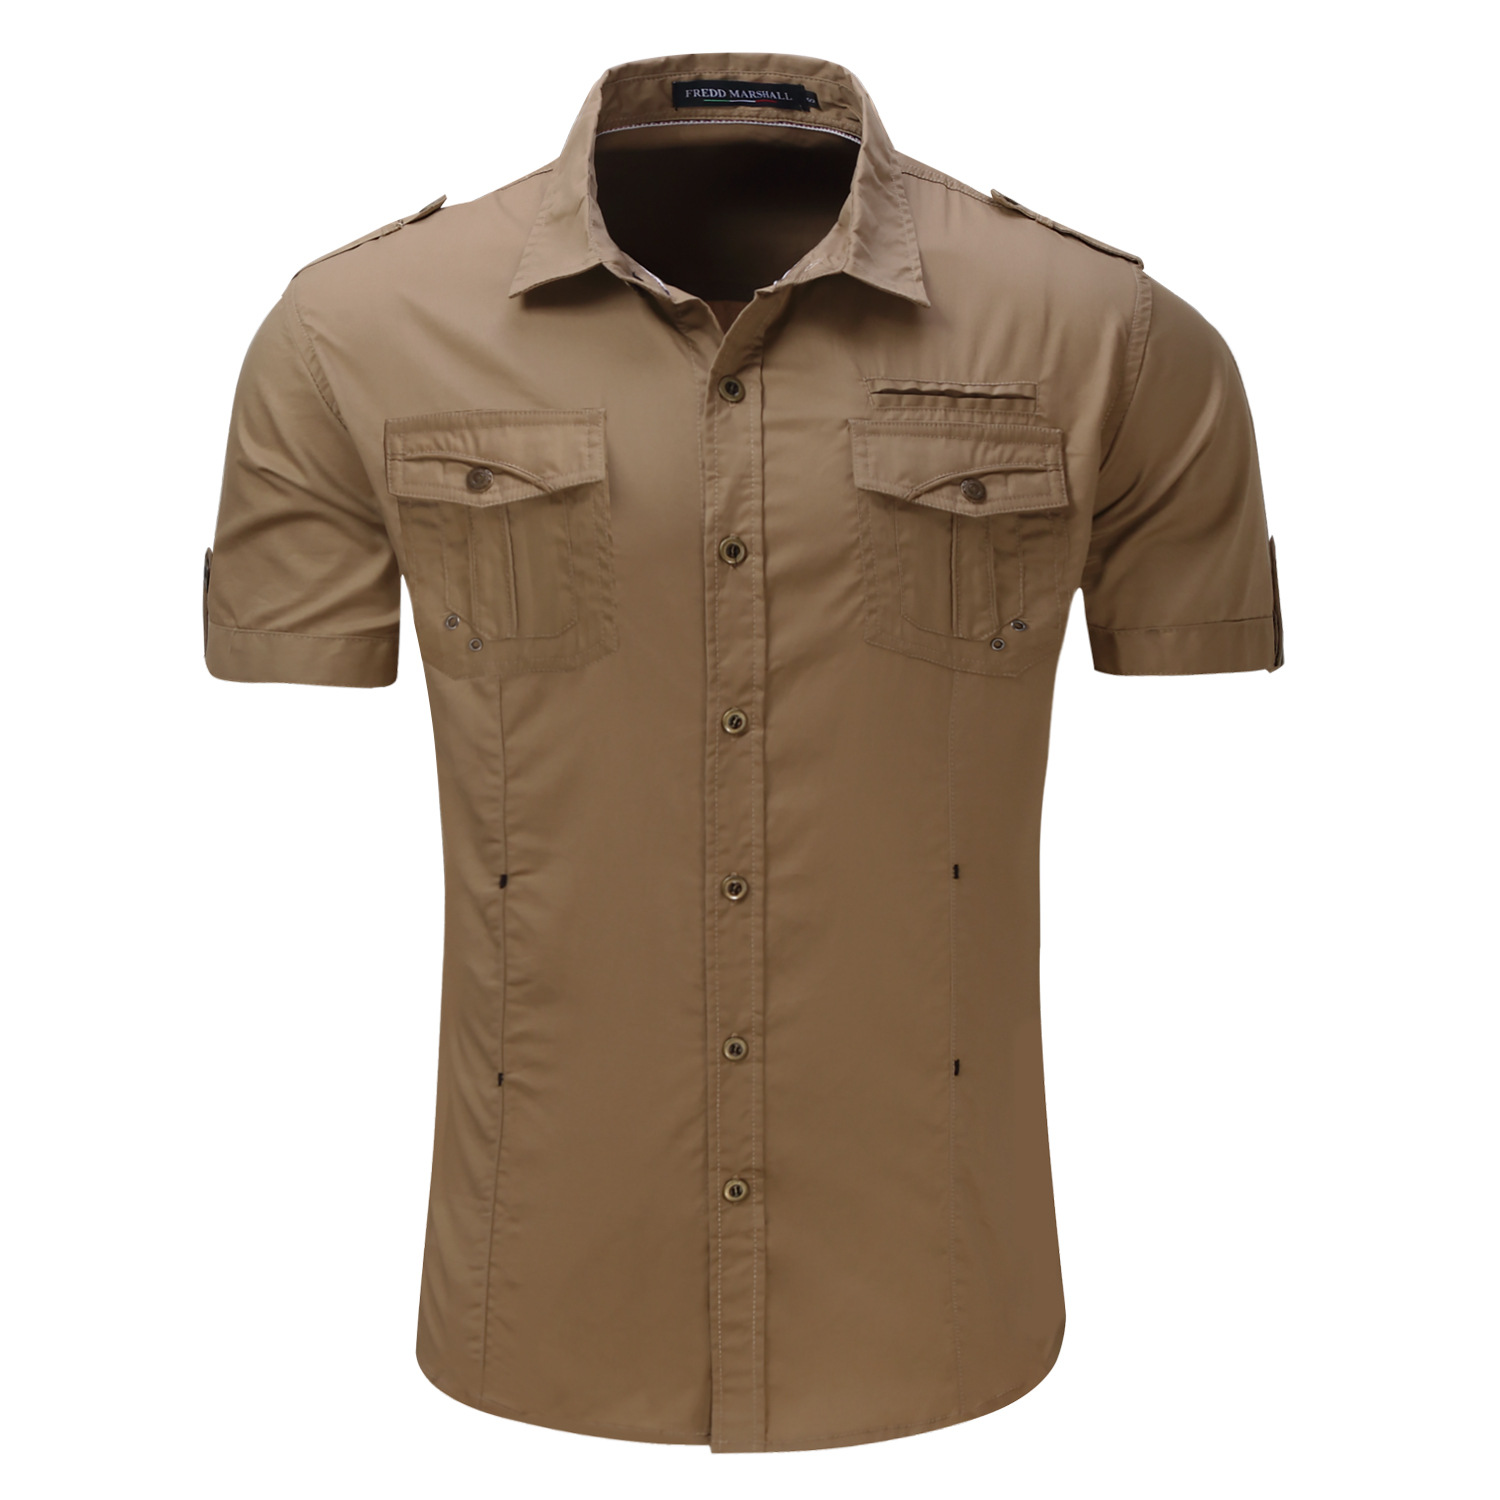 New Mens Cargo Shirt 100% Cotton Men Casual Shirt Solid Short Sleeve Shirts Work Shirt with Wash Standard plus Size